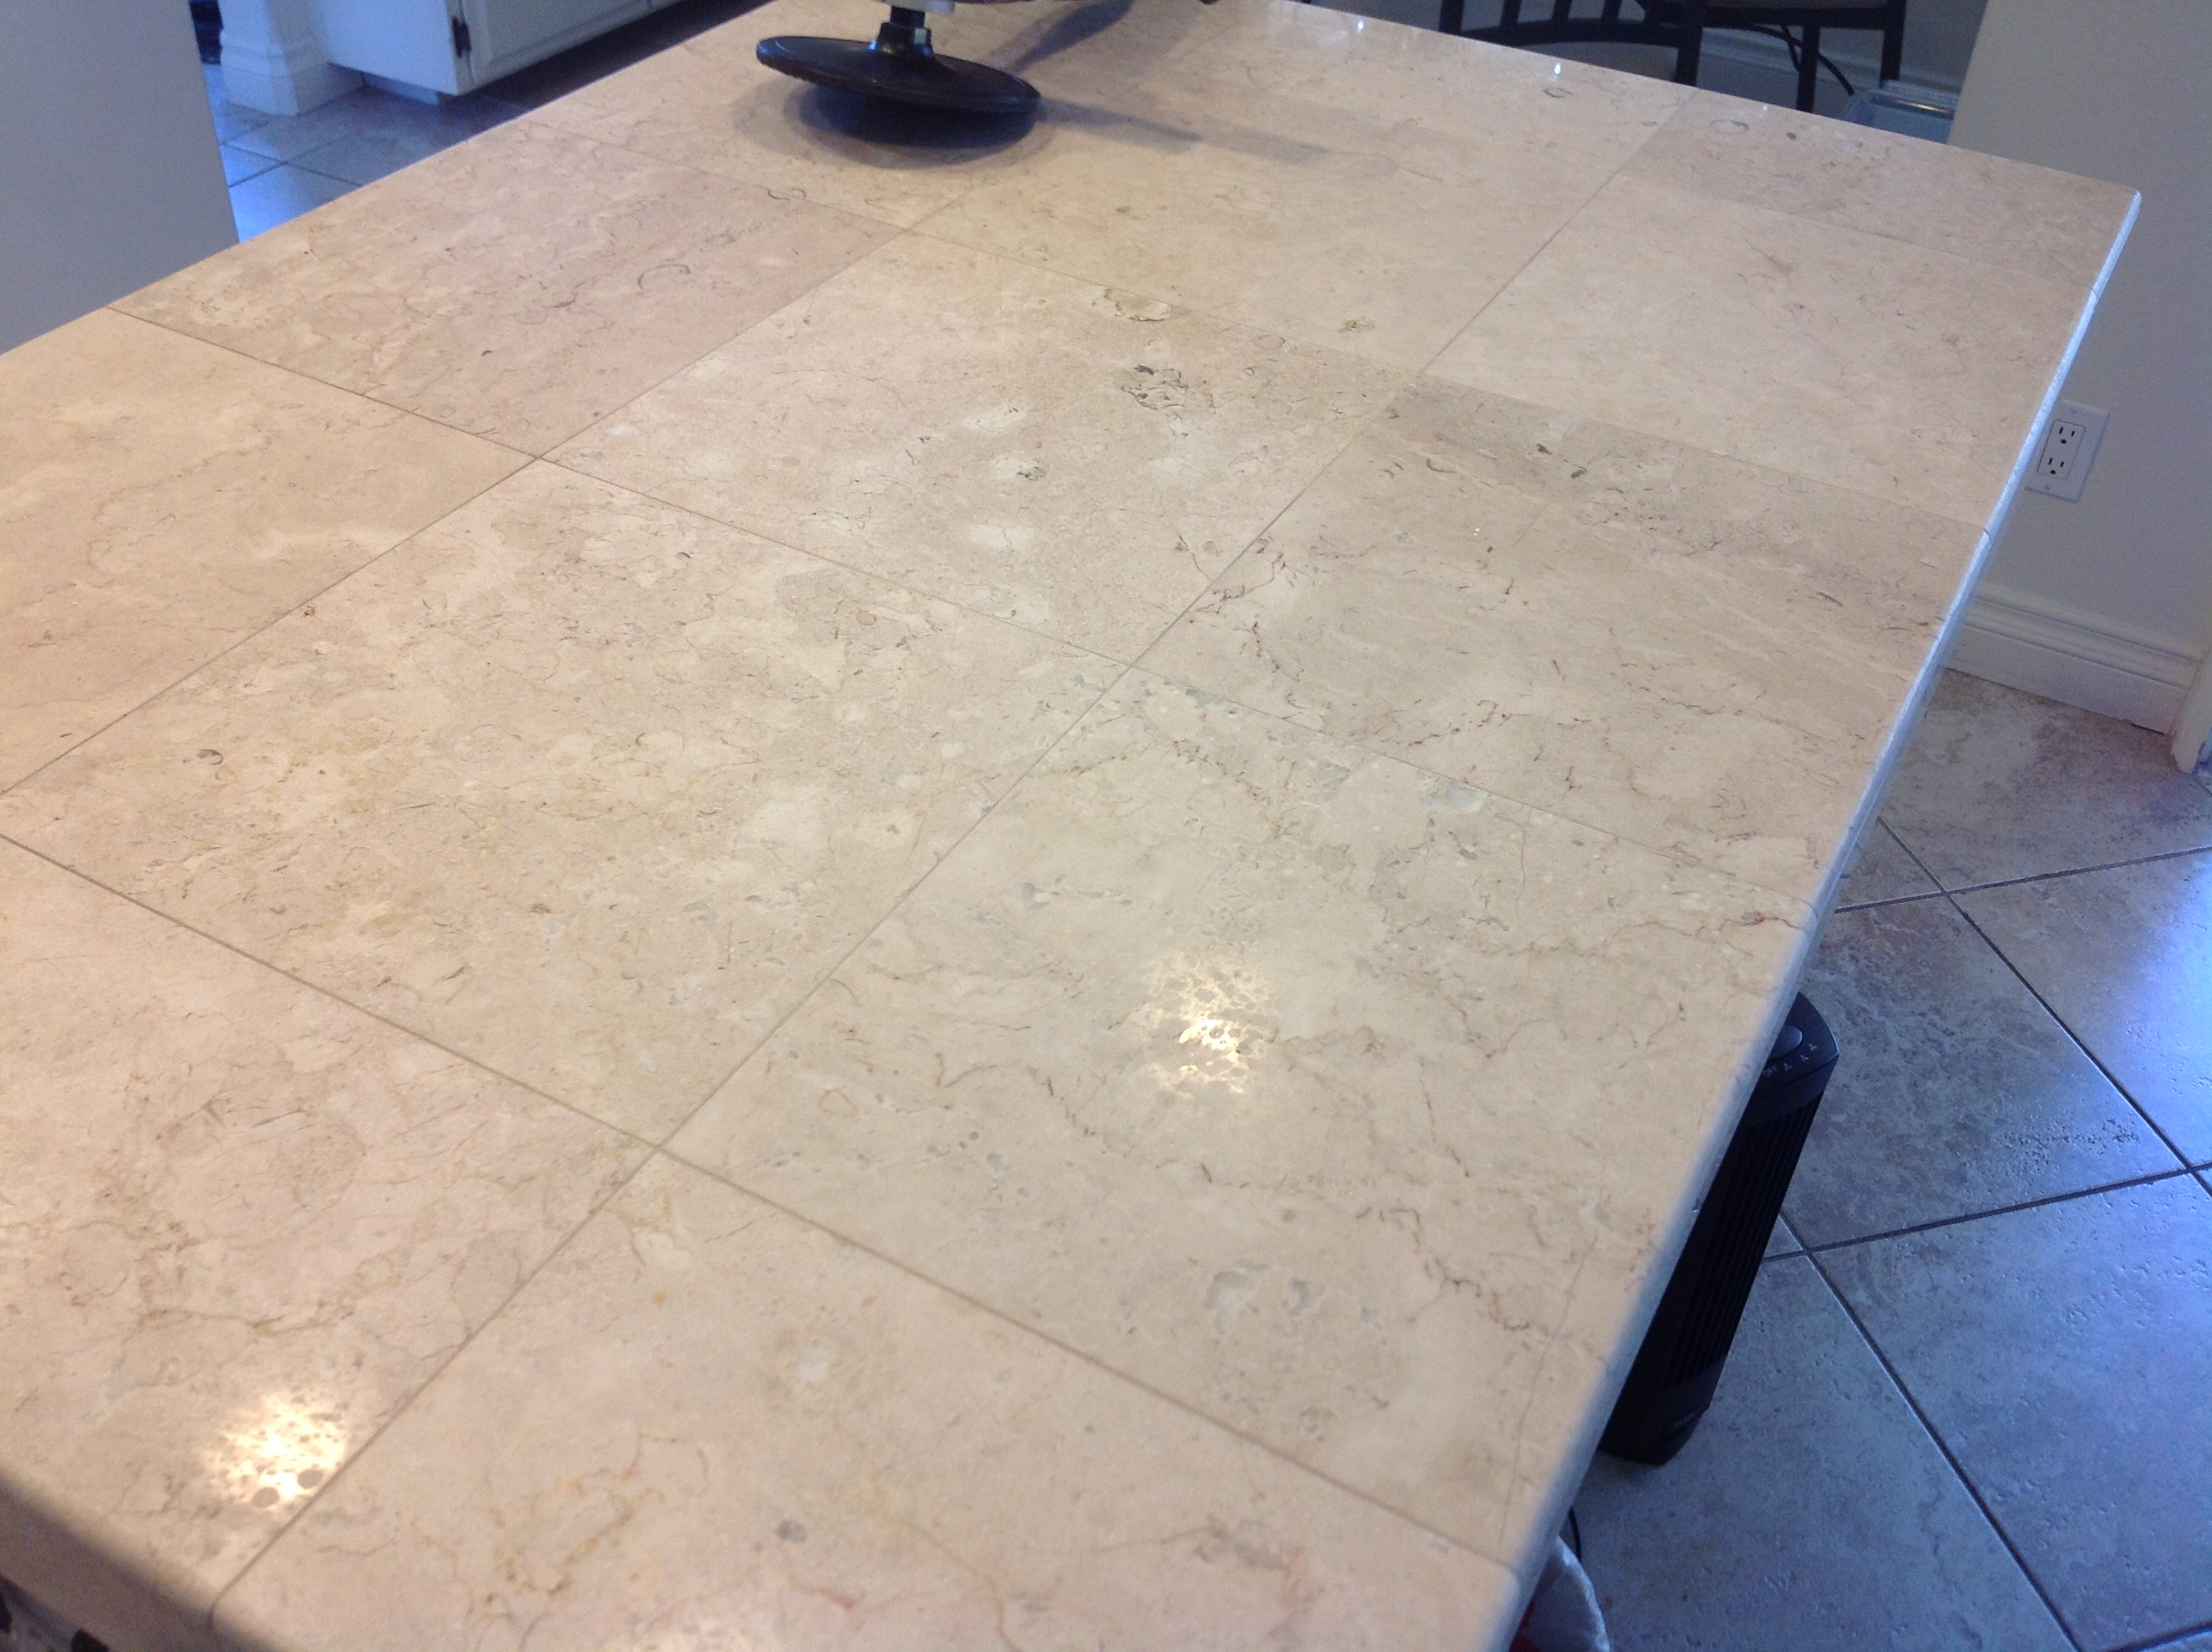 Cleaning Kitchen Counter Tile Grout